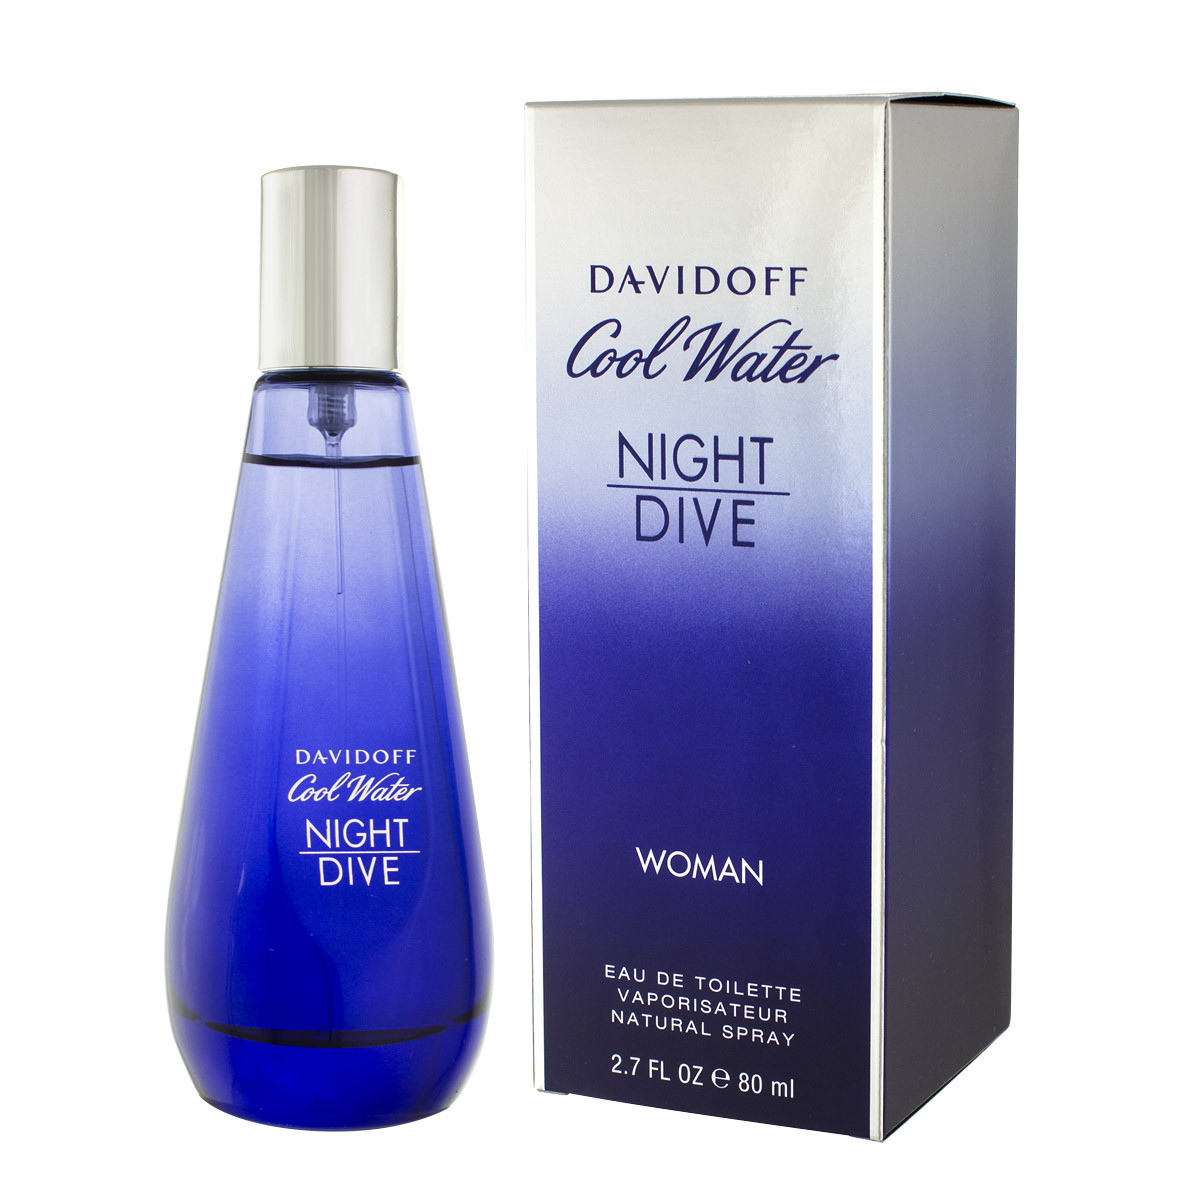 Davidoff cool water night dive woman eau de toilette 80 ml - Davidoff night dive ...